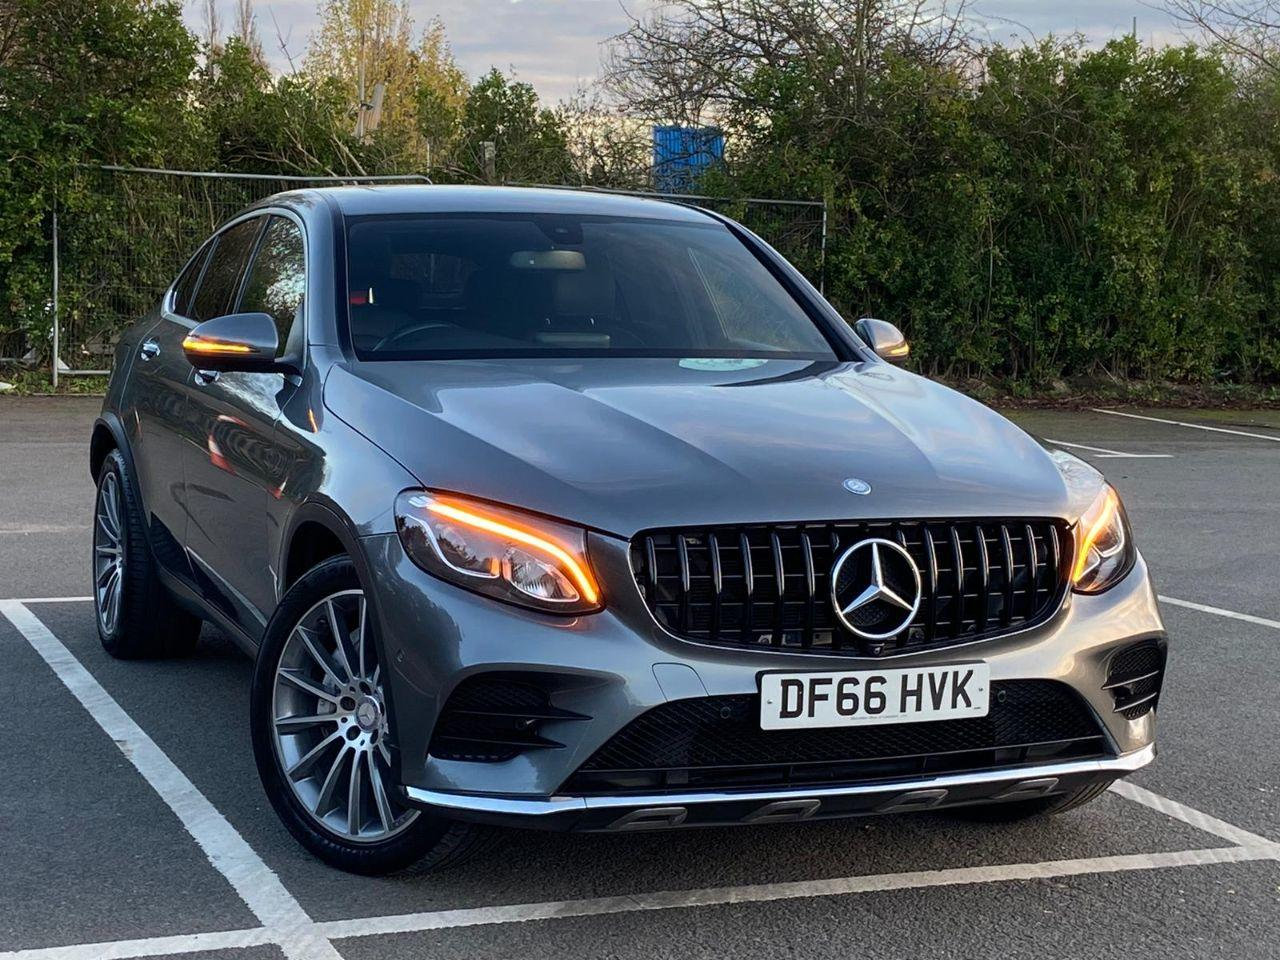 Mercedes-Benz GLC Coupe 2.1 GLC 220d 4Matic AMG Line Premium 5dr 9G-Tronic Coupe Diesel Grey